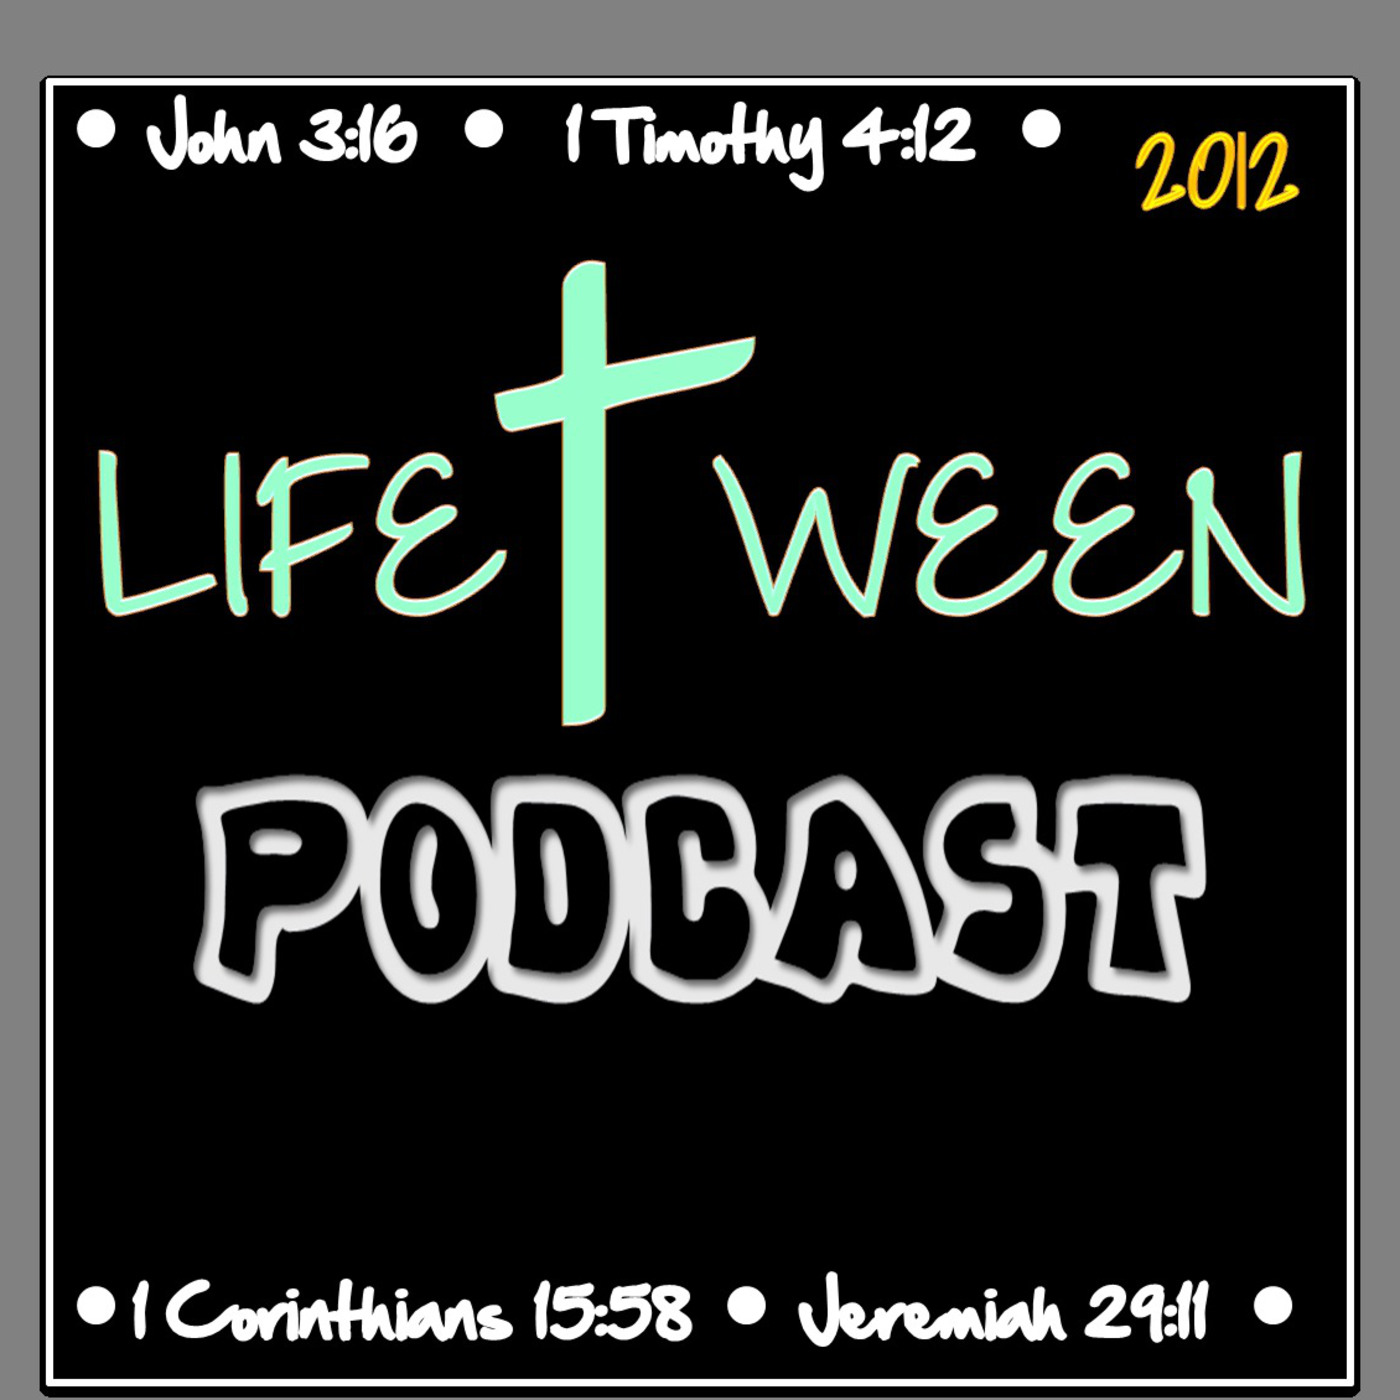 LifeTween Podcasts